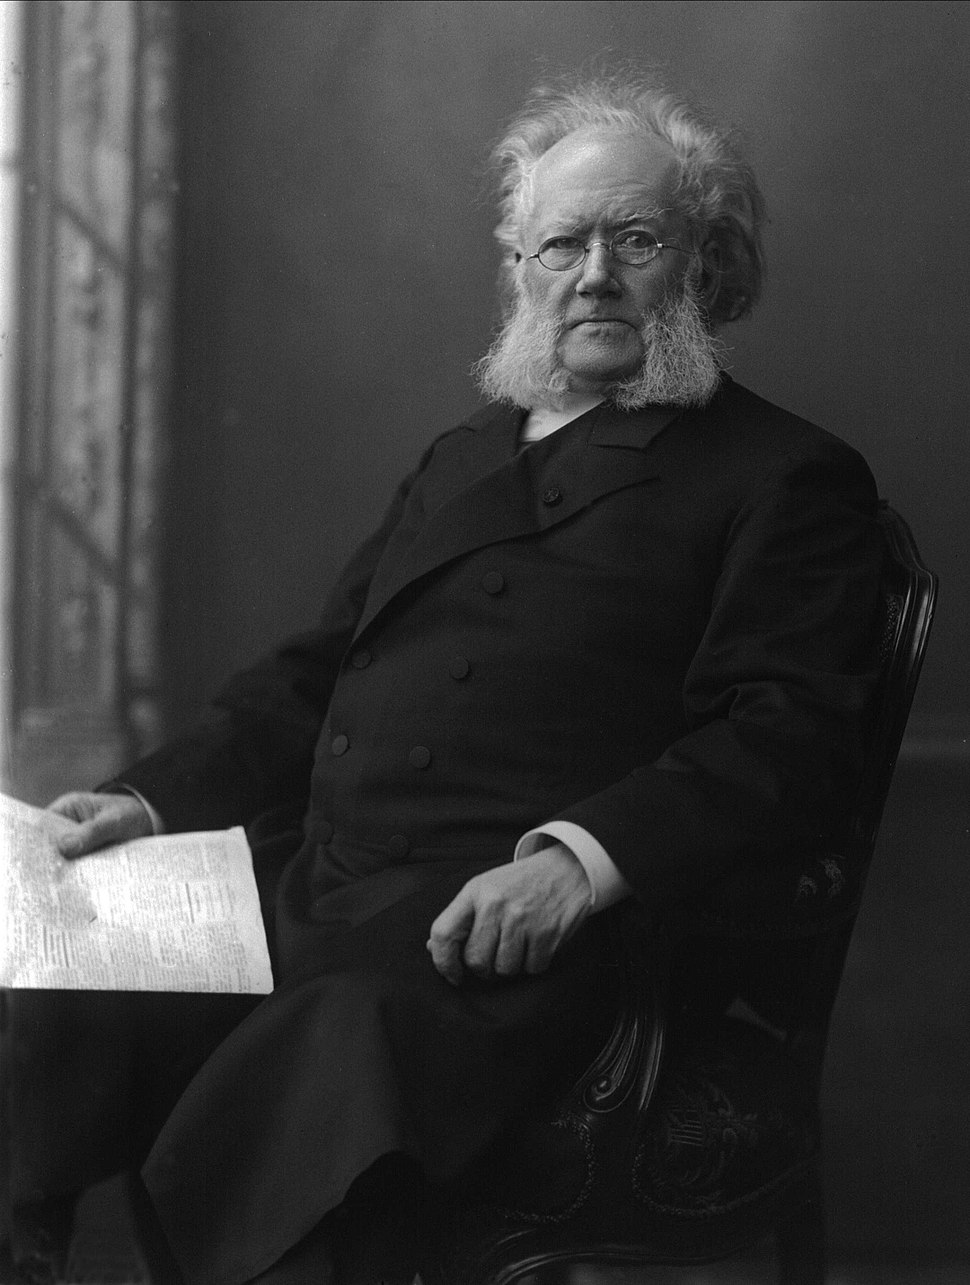 a biography of henrik ibsen th father if realism Henrik ibsen, often called the father of realism was a poet and aplaywright he was born in norway in 1828, and passed away in 1906.